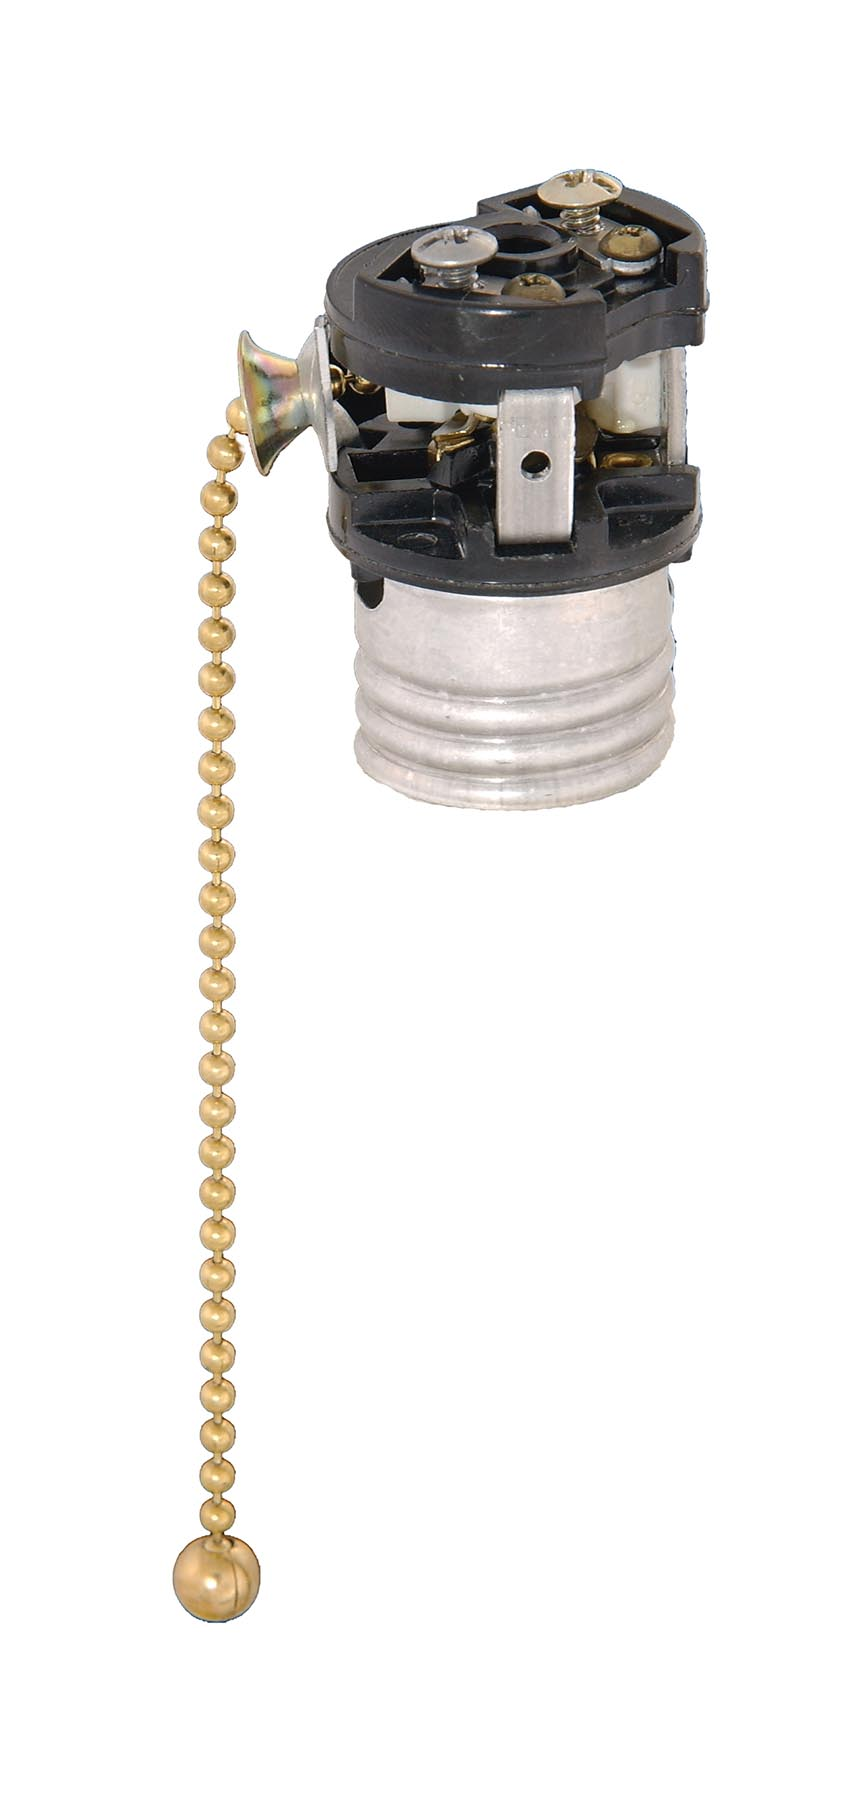 Leviton Brand Pull Chain Socket Interior For Fat Boy Only